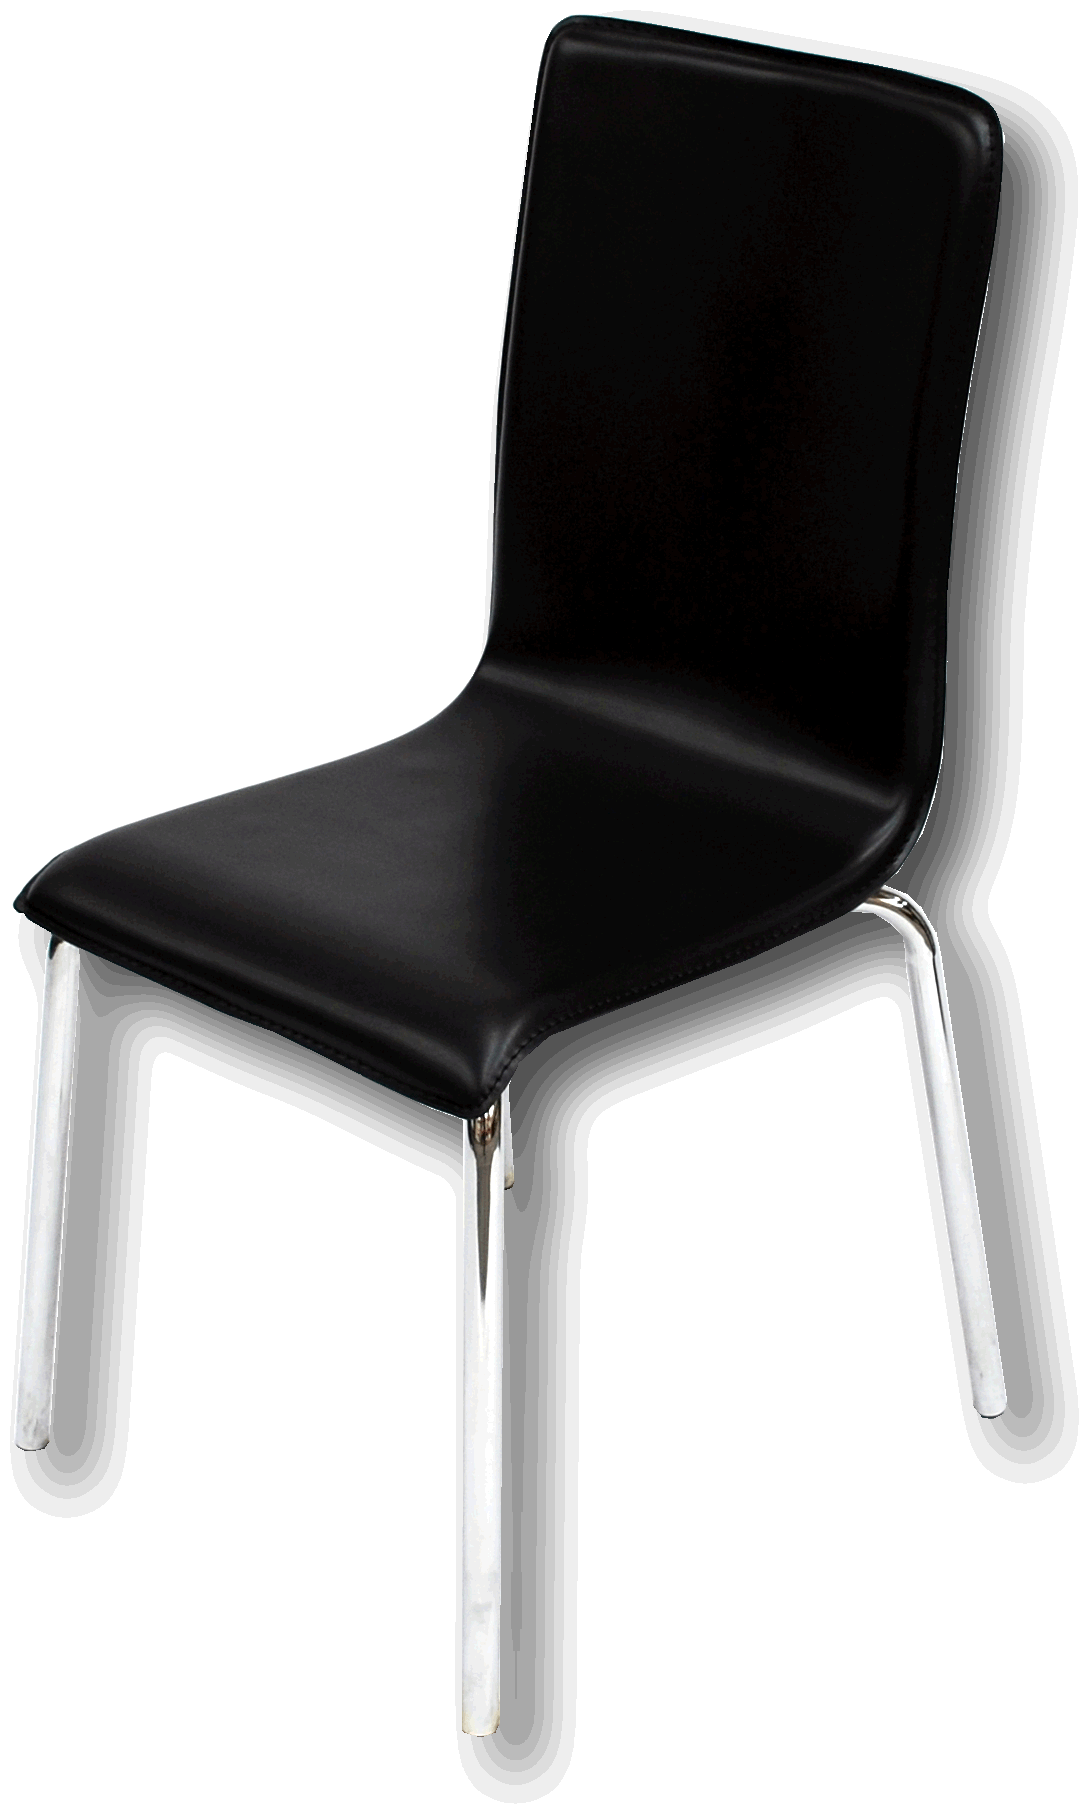 aesthetic chair png